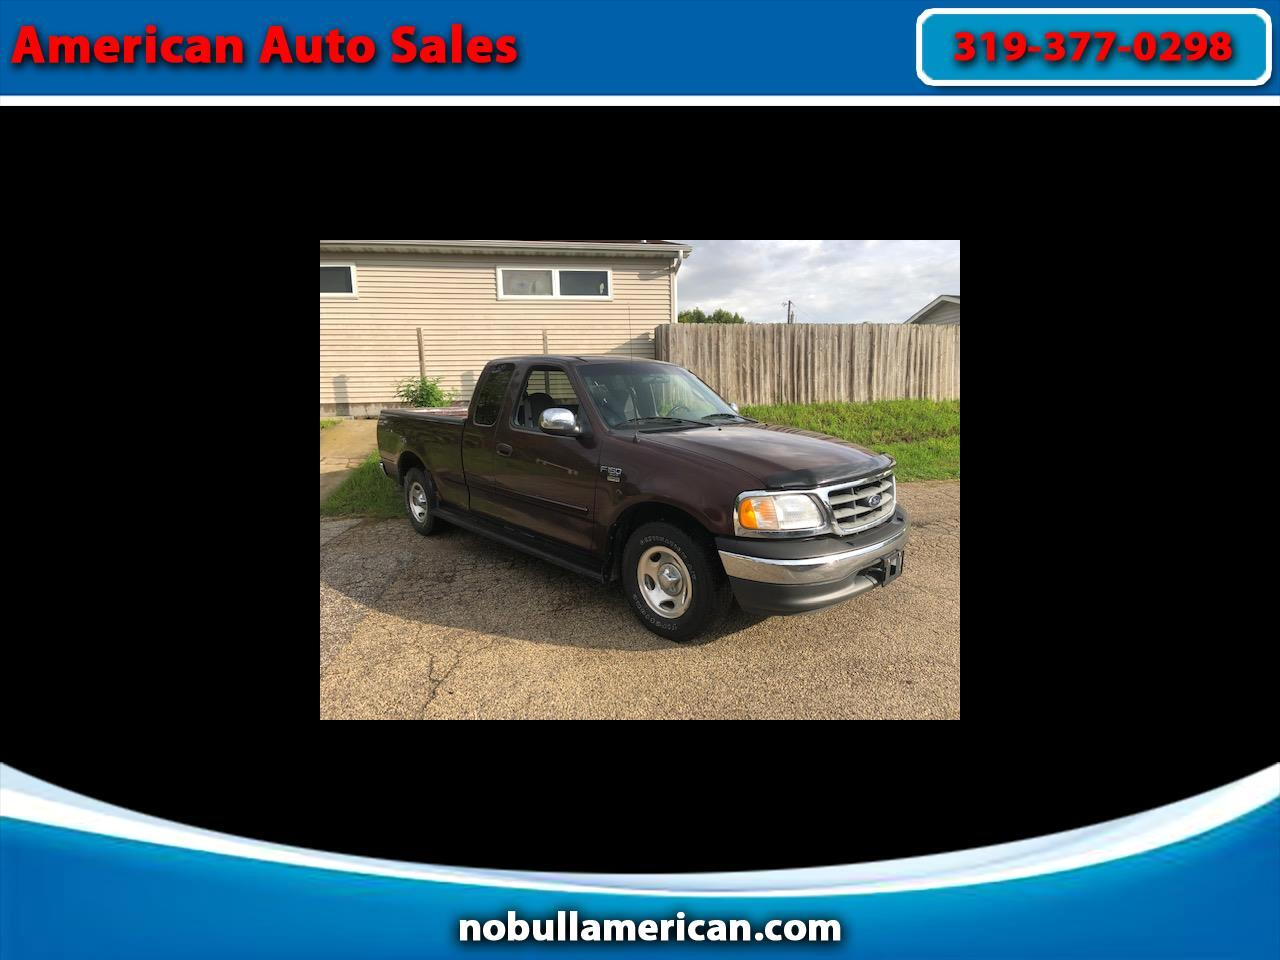 Ford F-150 XLT SuperCab Short Bed 2WD 2000